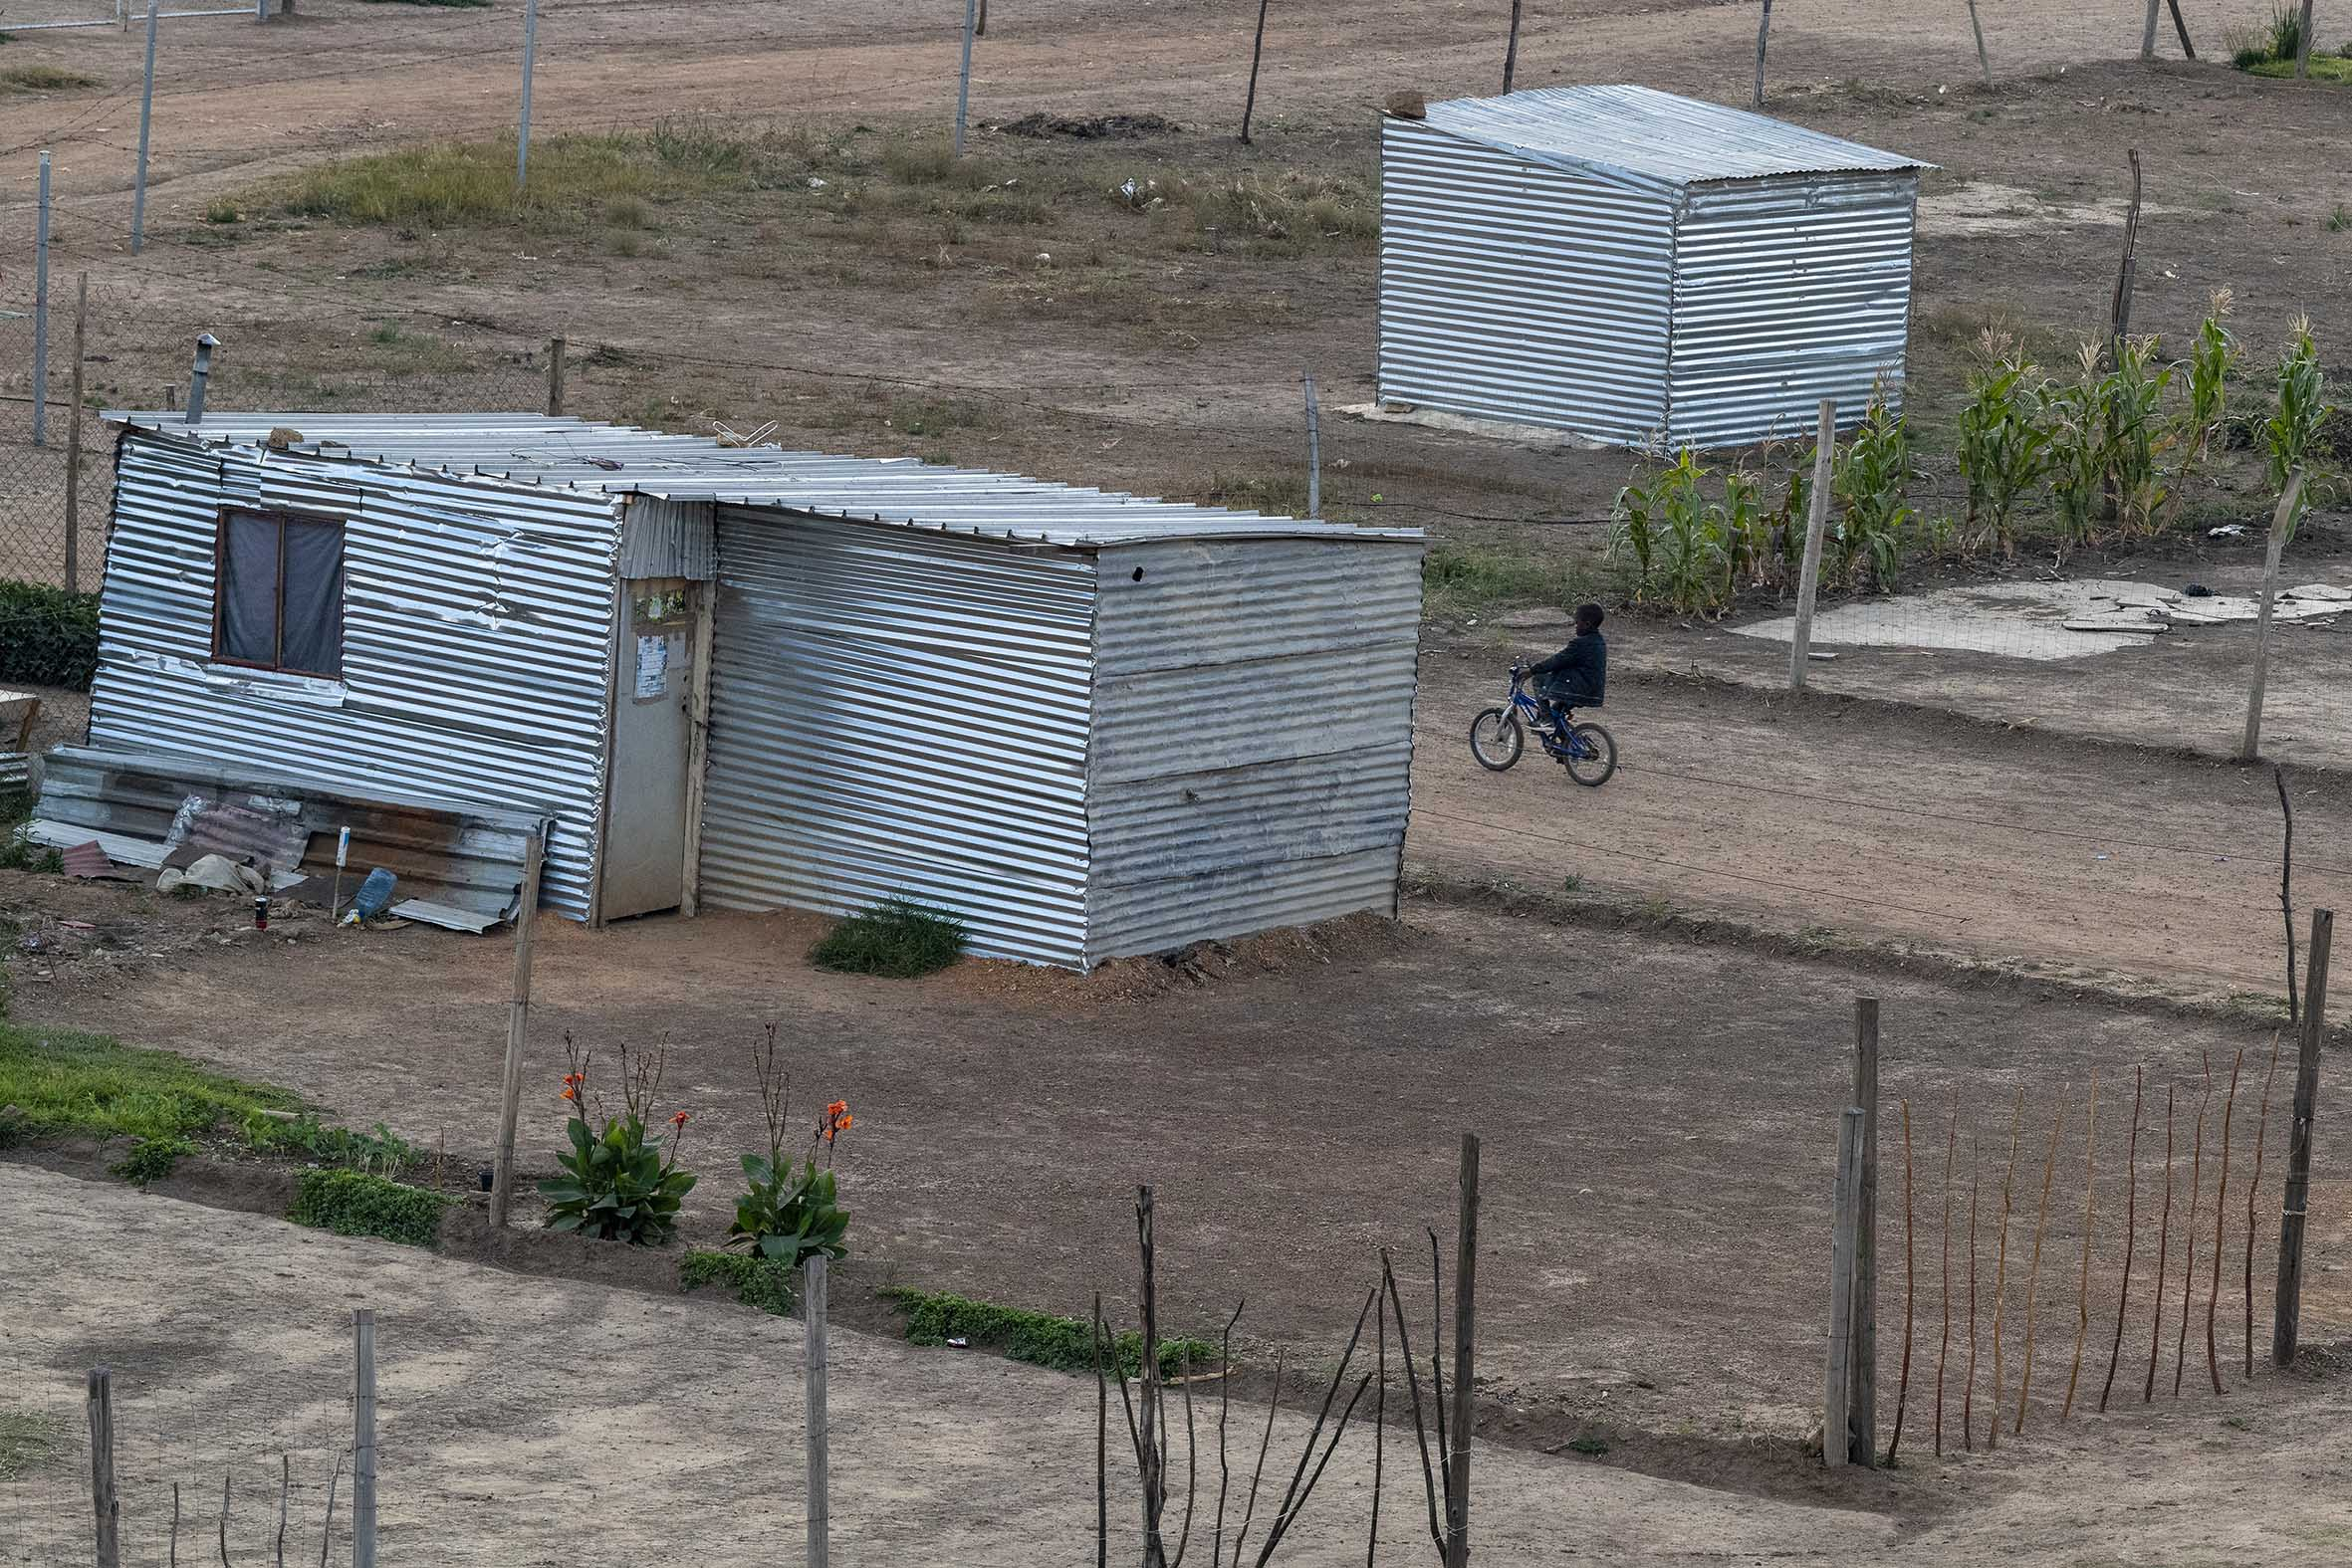 20 May 2021: A child rides his bike in Tjovitjo, a shack settlement established in 2017 near Orange Farm, south of Johannesburg. The dolomite beneath the settlement may dissolve and cause sinkholes if more permanent infrastrucure is brought in.